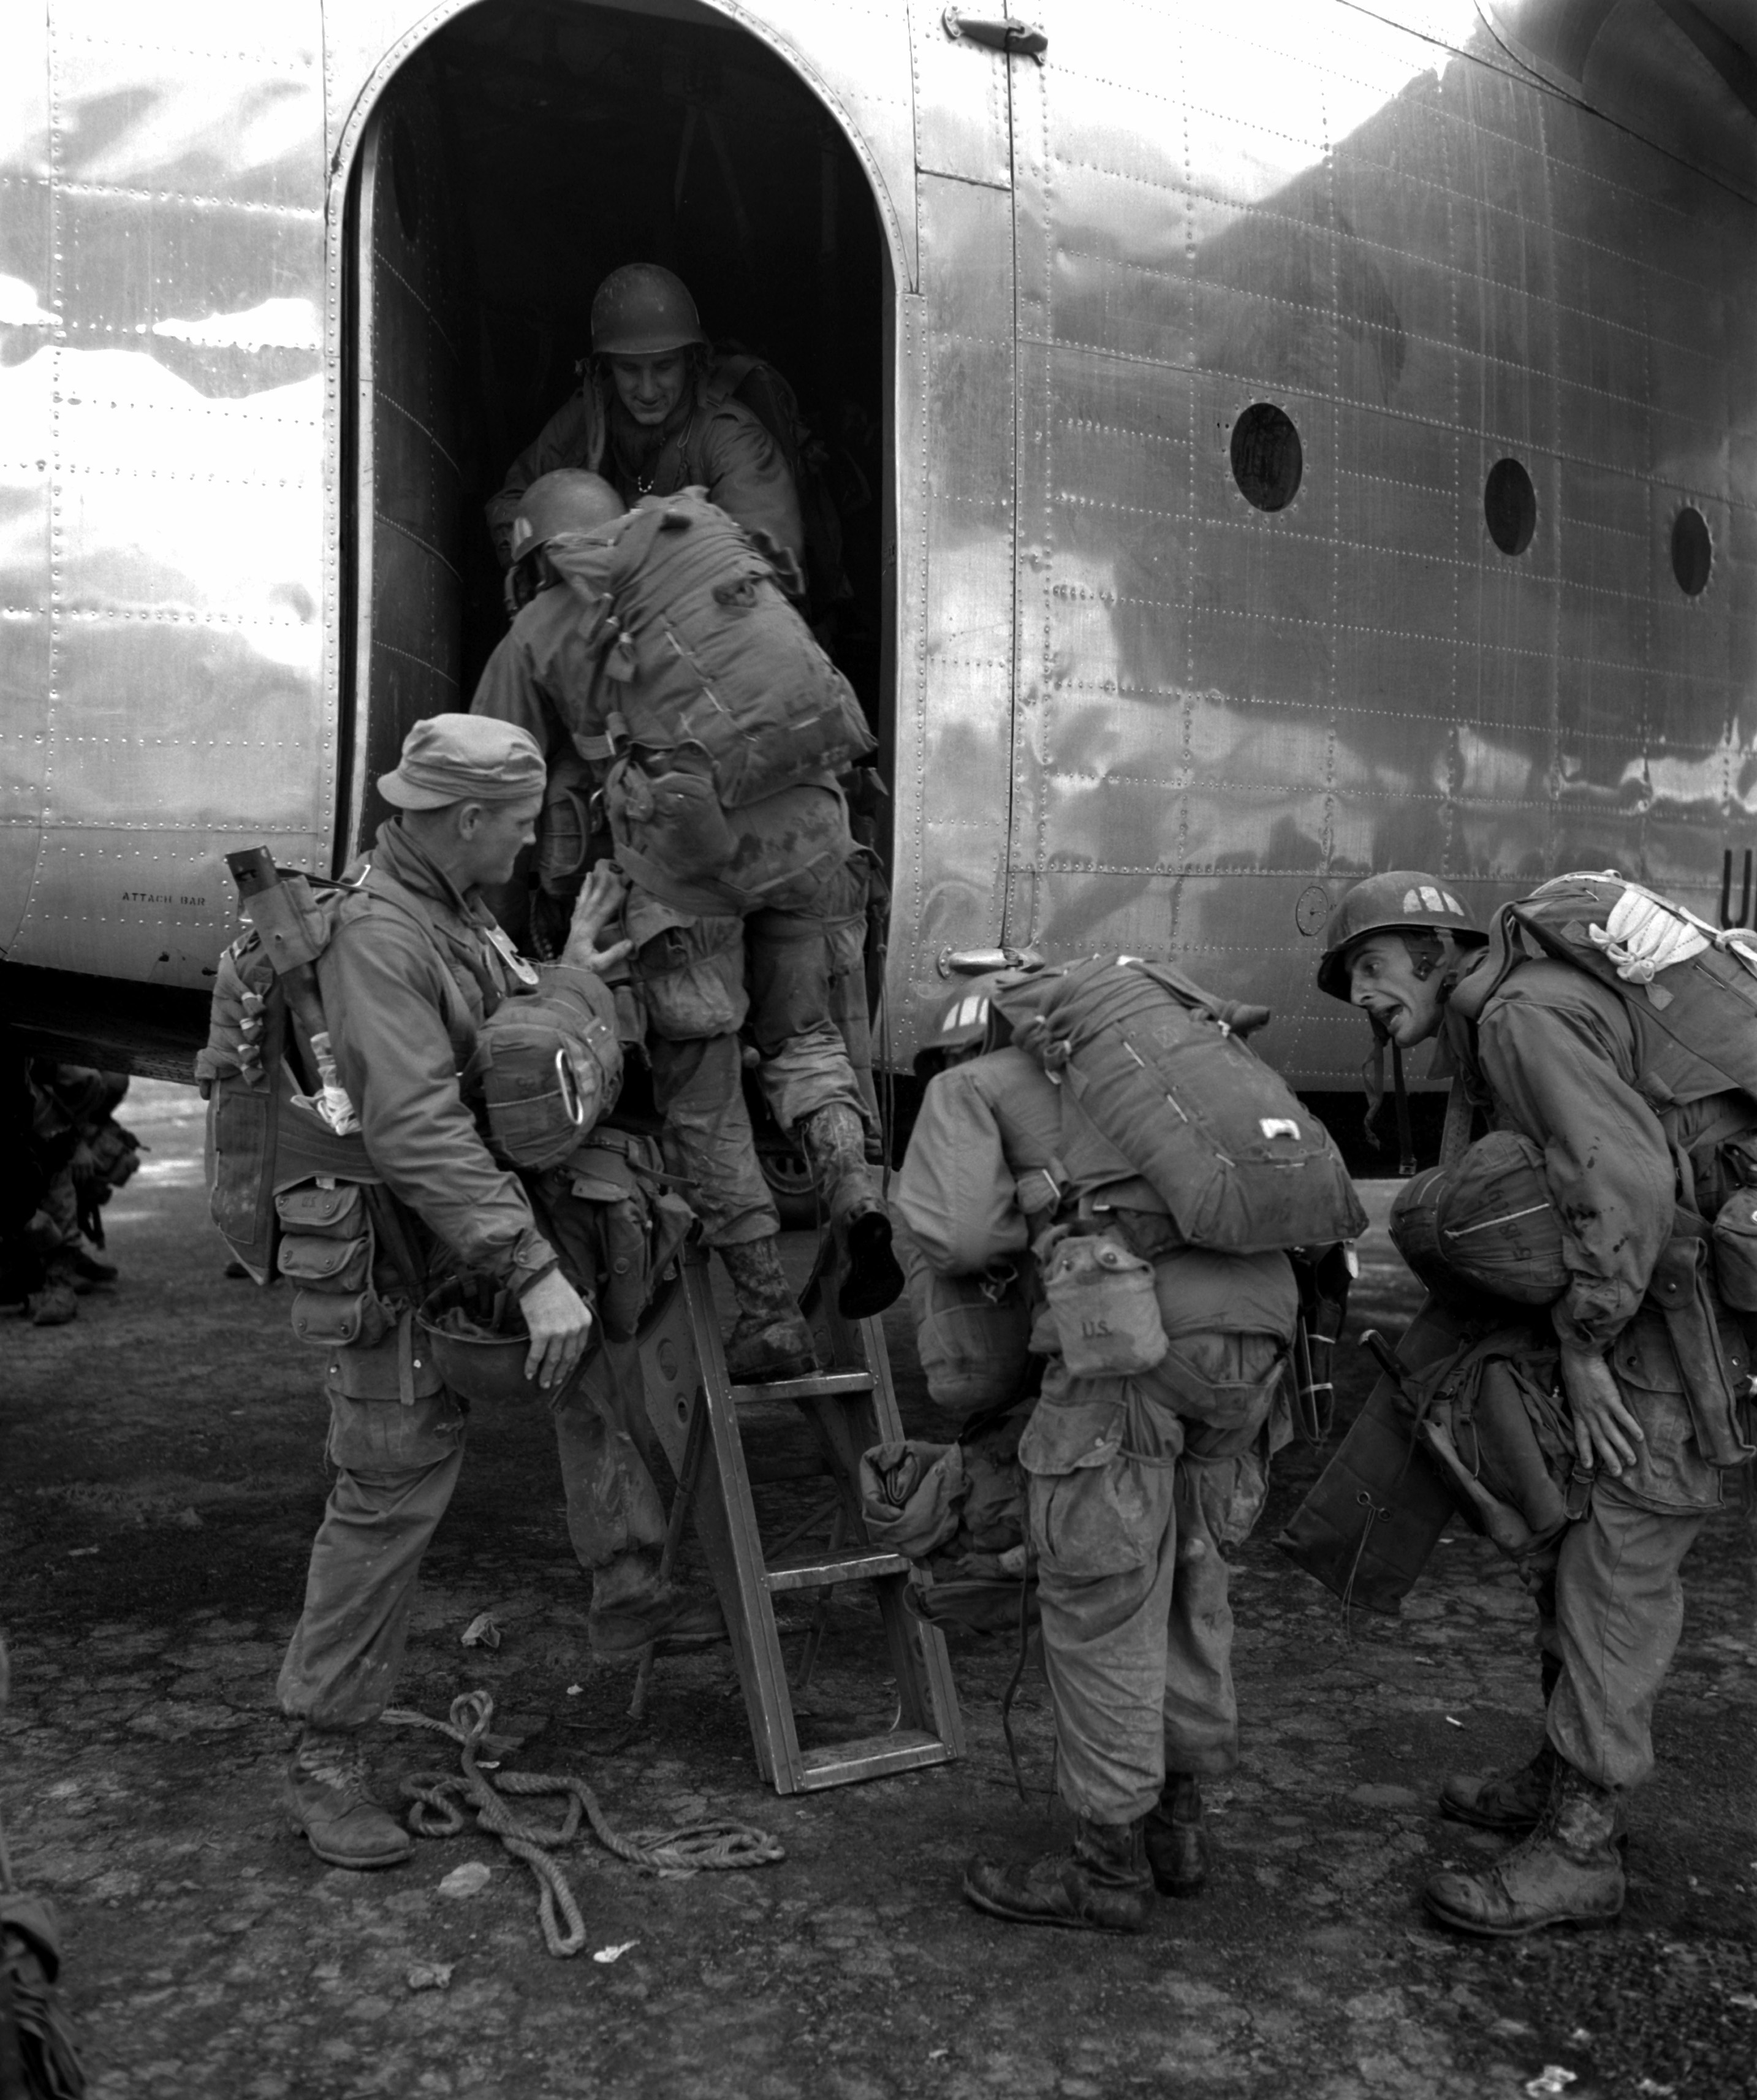 the outcome of the korean war This essay examines the origins of the korean war, the military history of the war, including the massive us bombing campaign of the north, the war's extensive human costs, public opinion and antiwar dissent in the us, and the legacies of the war.